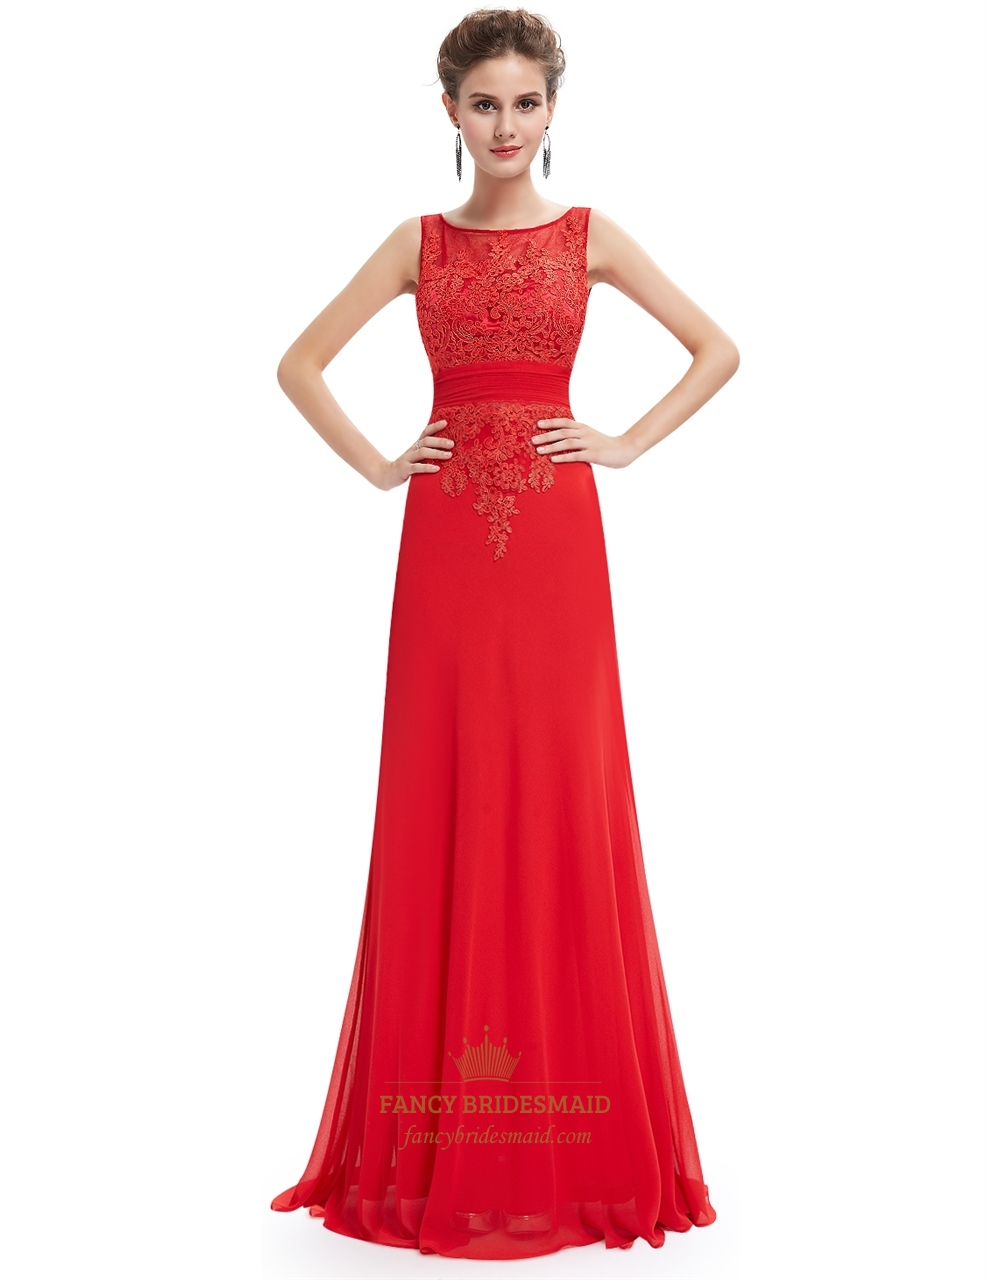 Red Chiffon Open Back Prom Dress With Beaded Lace Applique